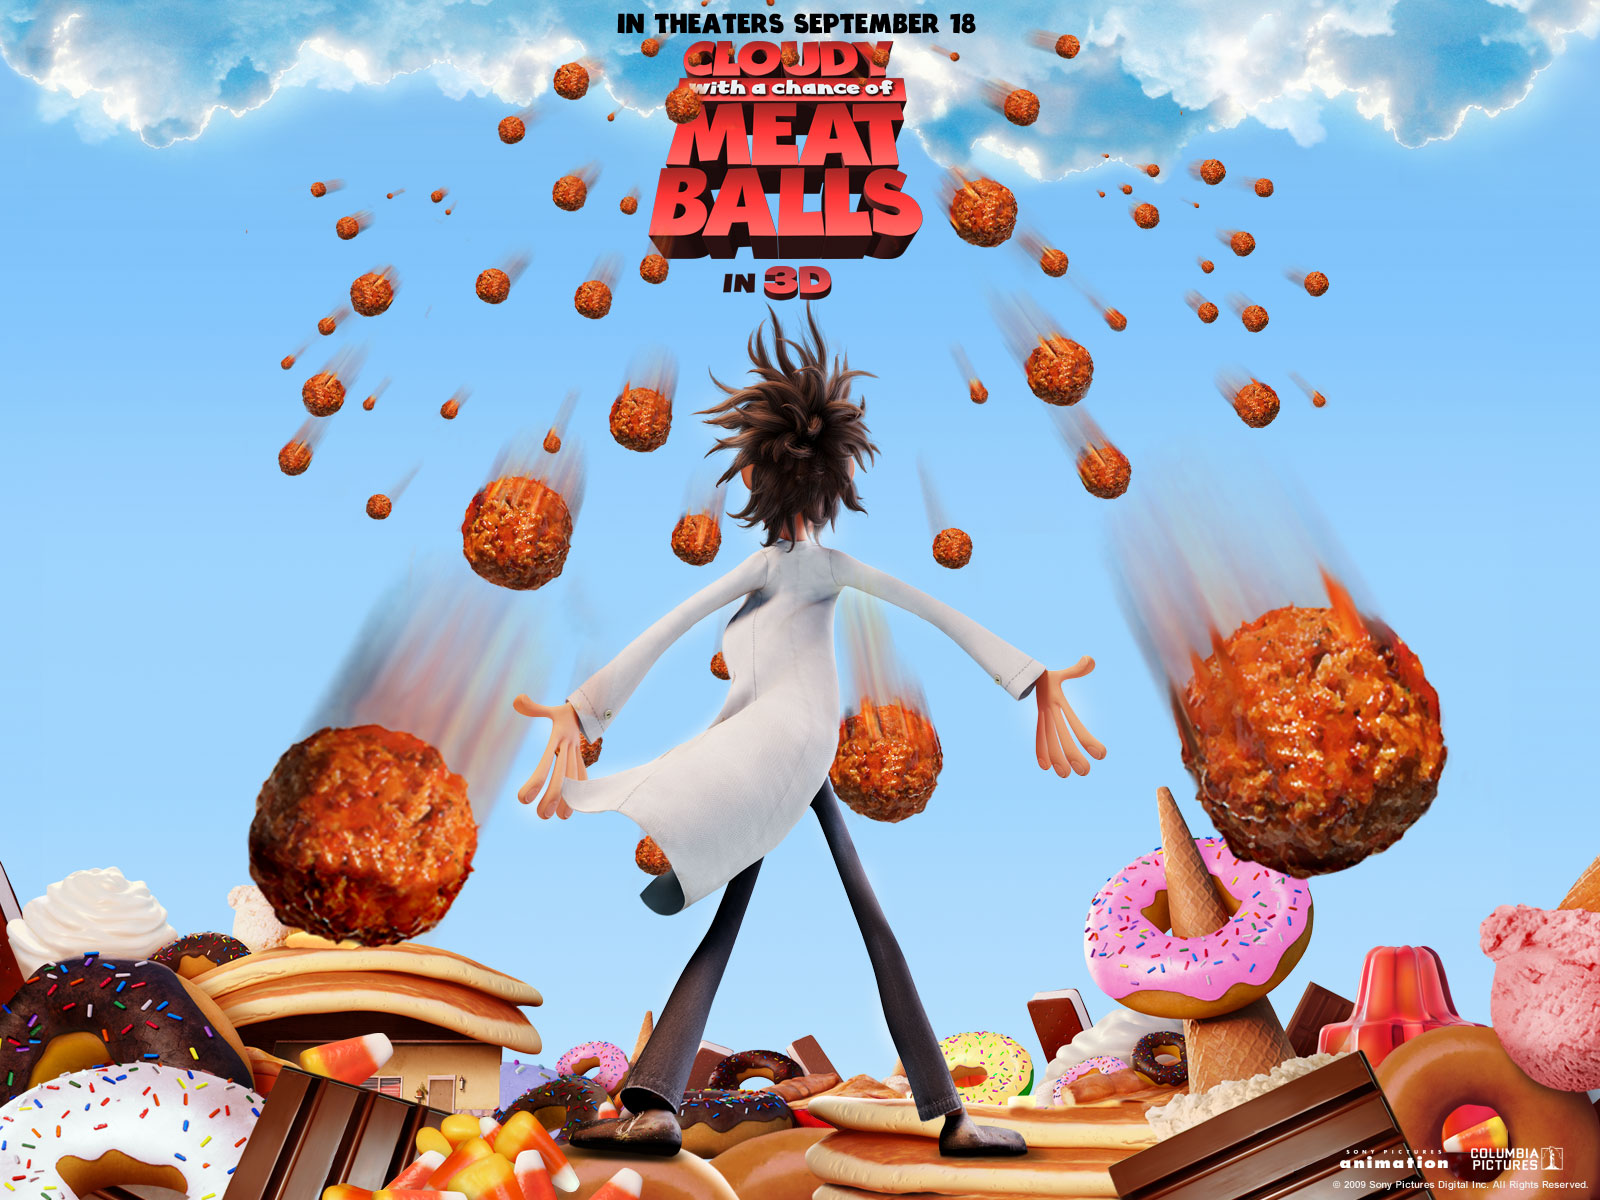 http://2.bp.blogspot.com/-P05ixWf51BQ/T750kp0DyCI/AAAAAAAAs68/v6ckW2U7Pbk/s1600/cloudy_with_a_chance_of_meatballs_wallpaper.jpg